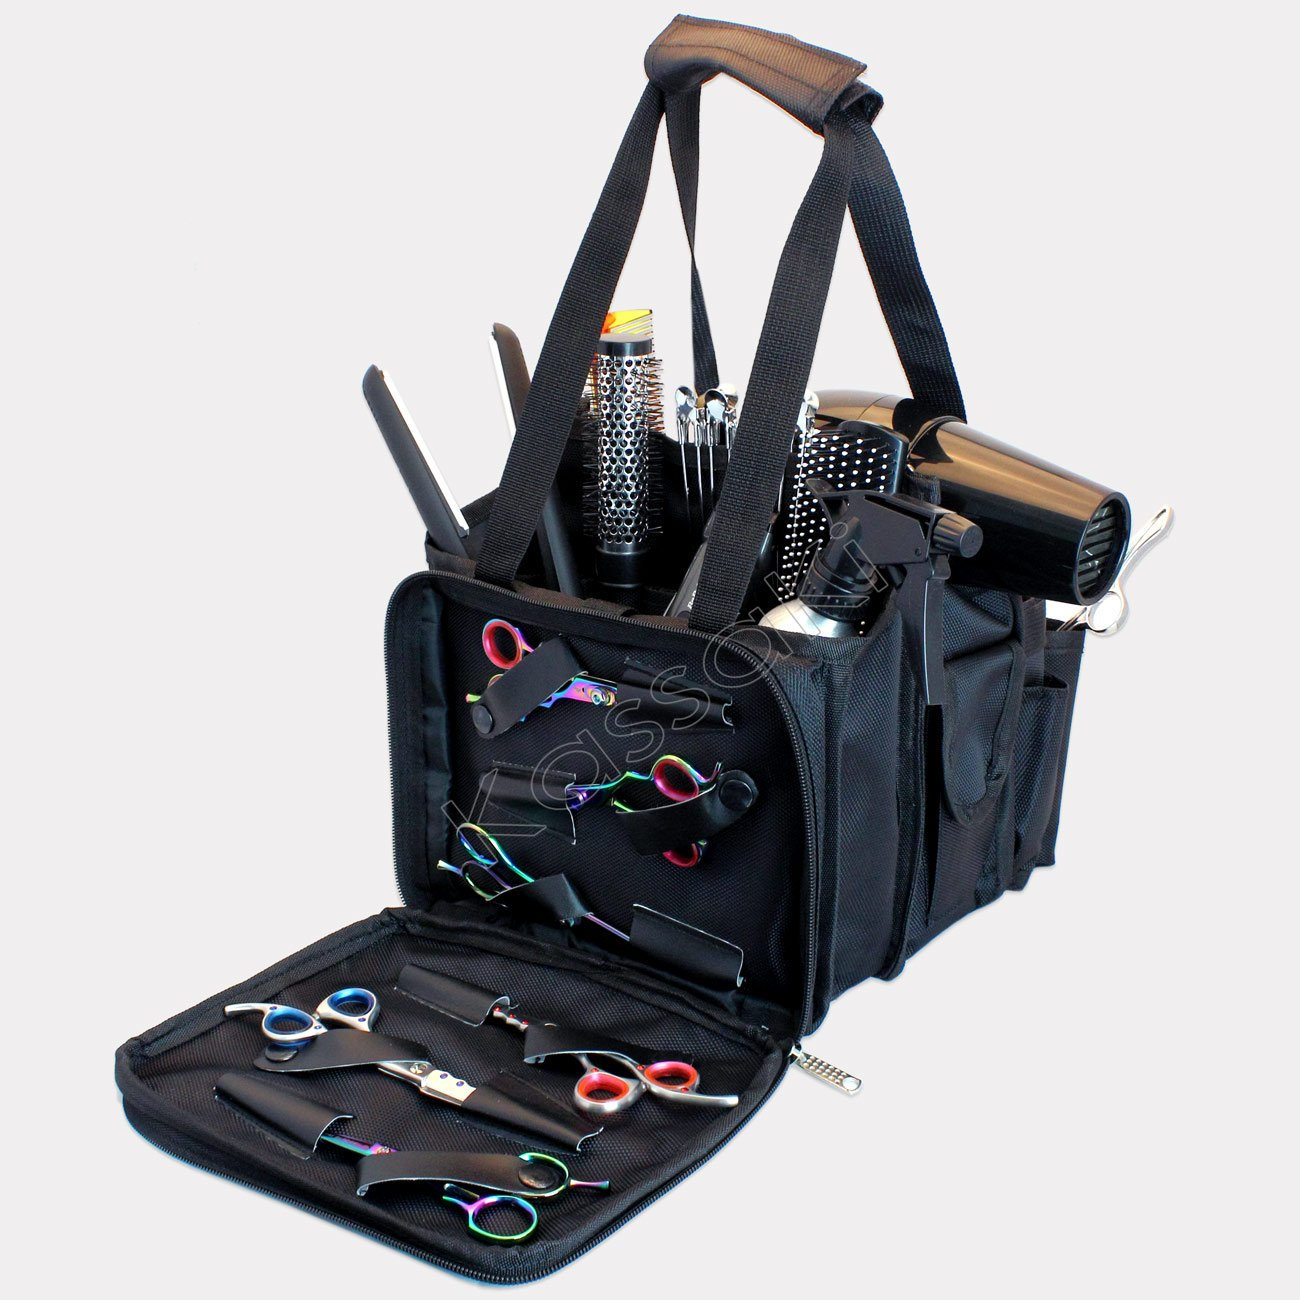 BLACK Hairdressing Tool Bag Carry Case Perfect for Hairdresser/Barber/Salon Accessories Storage/Session Kassaki